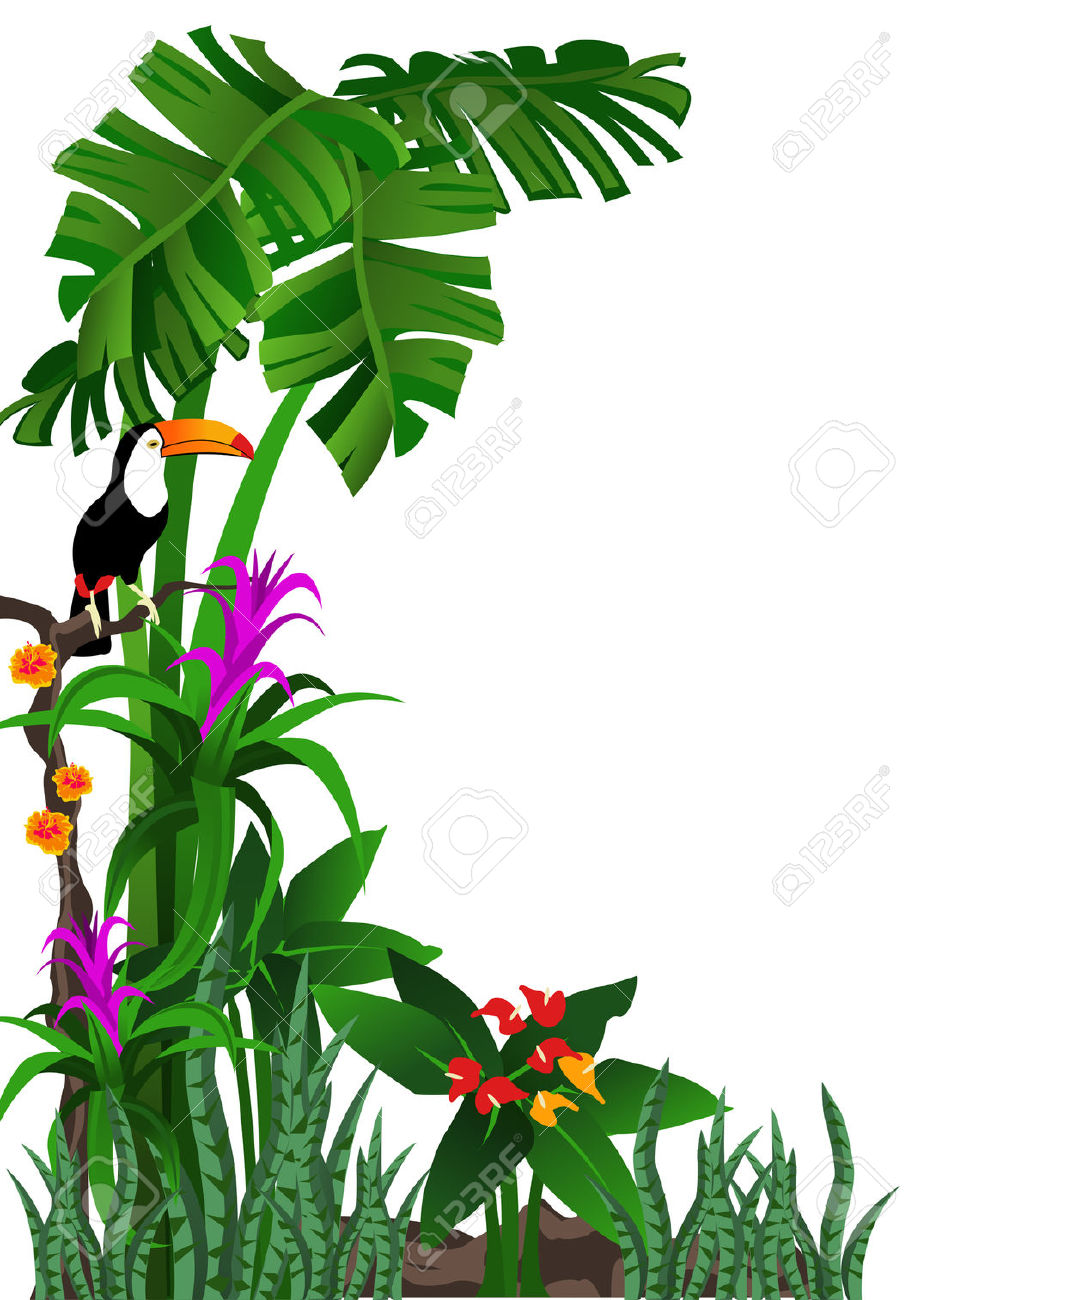 tropical clipart at getdrawings com free for personal use tropical rh getdrawings com tropical clip art images tropical clipart black and white